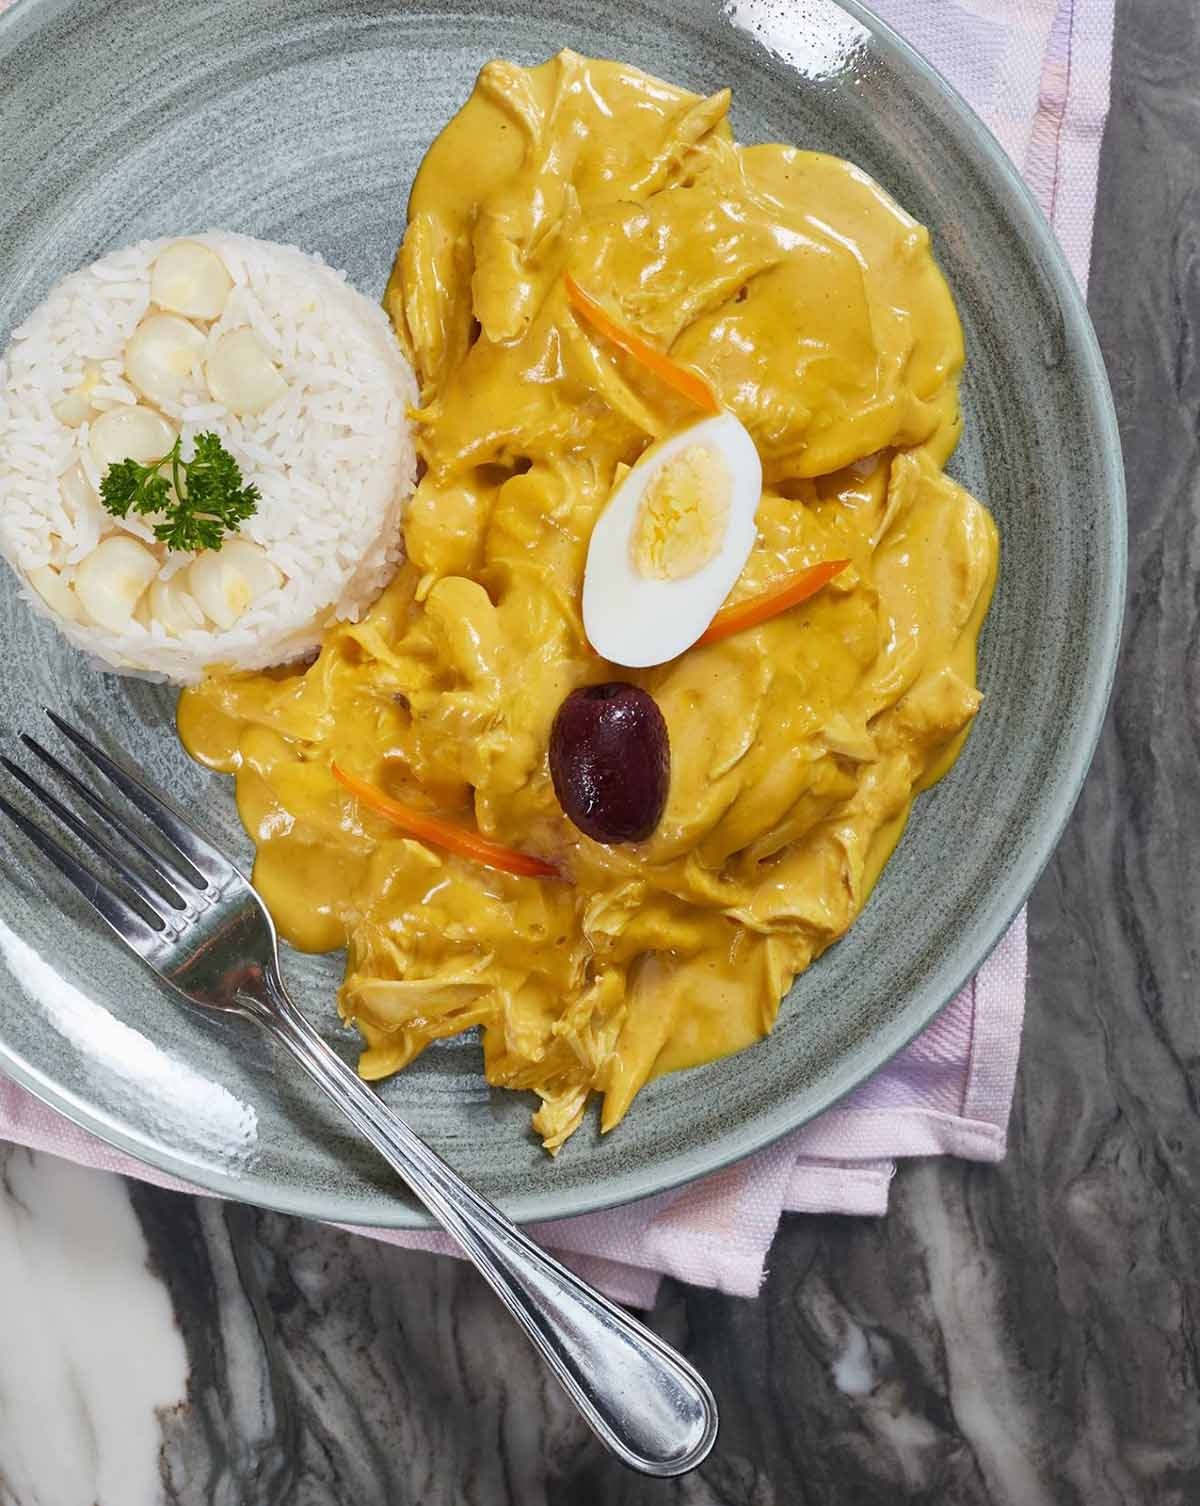 A top Peruvian food, aji de gallina is a yellow chicken stew served with white rice.